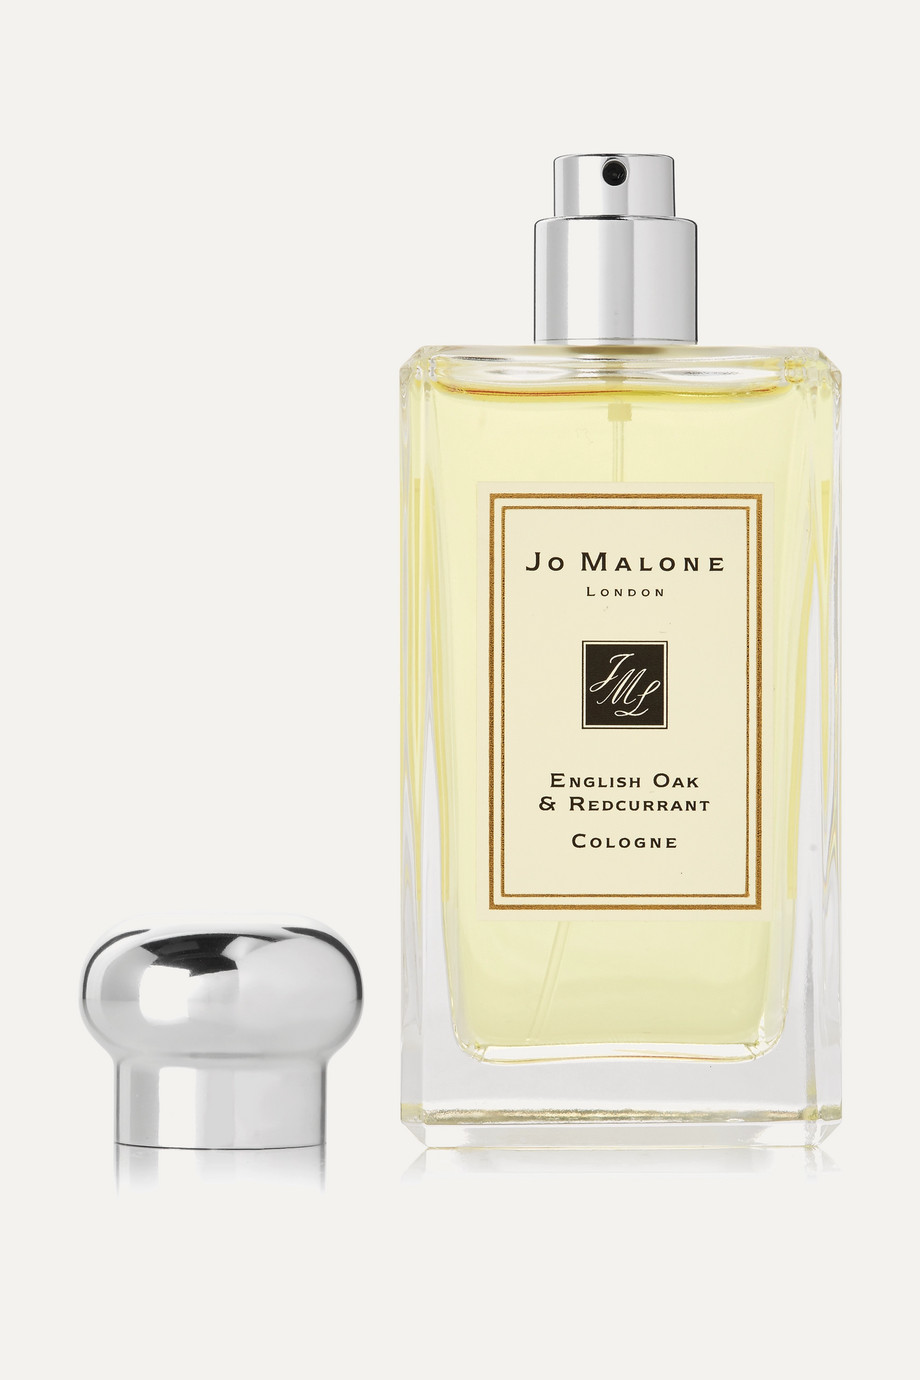 Jo Malone London English Oak & Redcurrant Cologne, 100ml